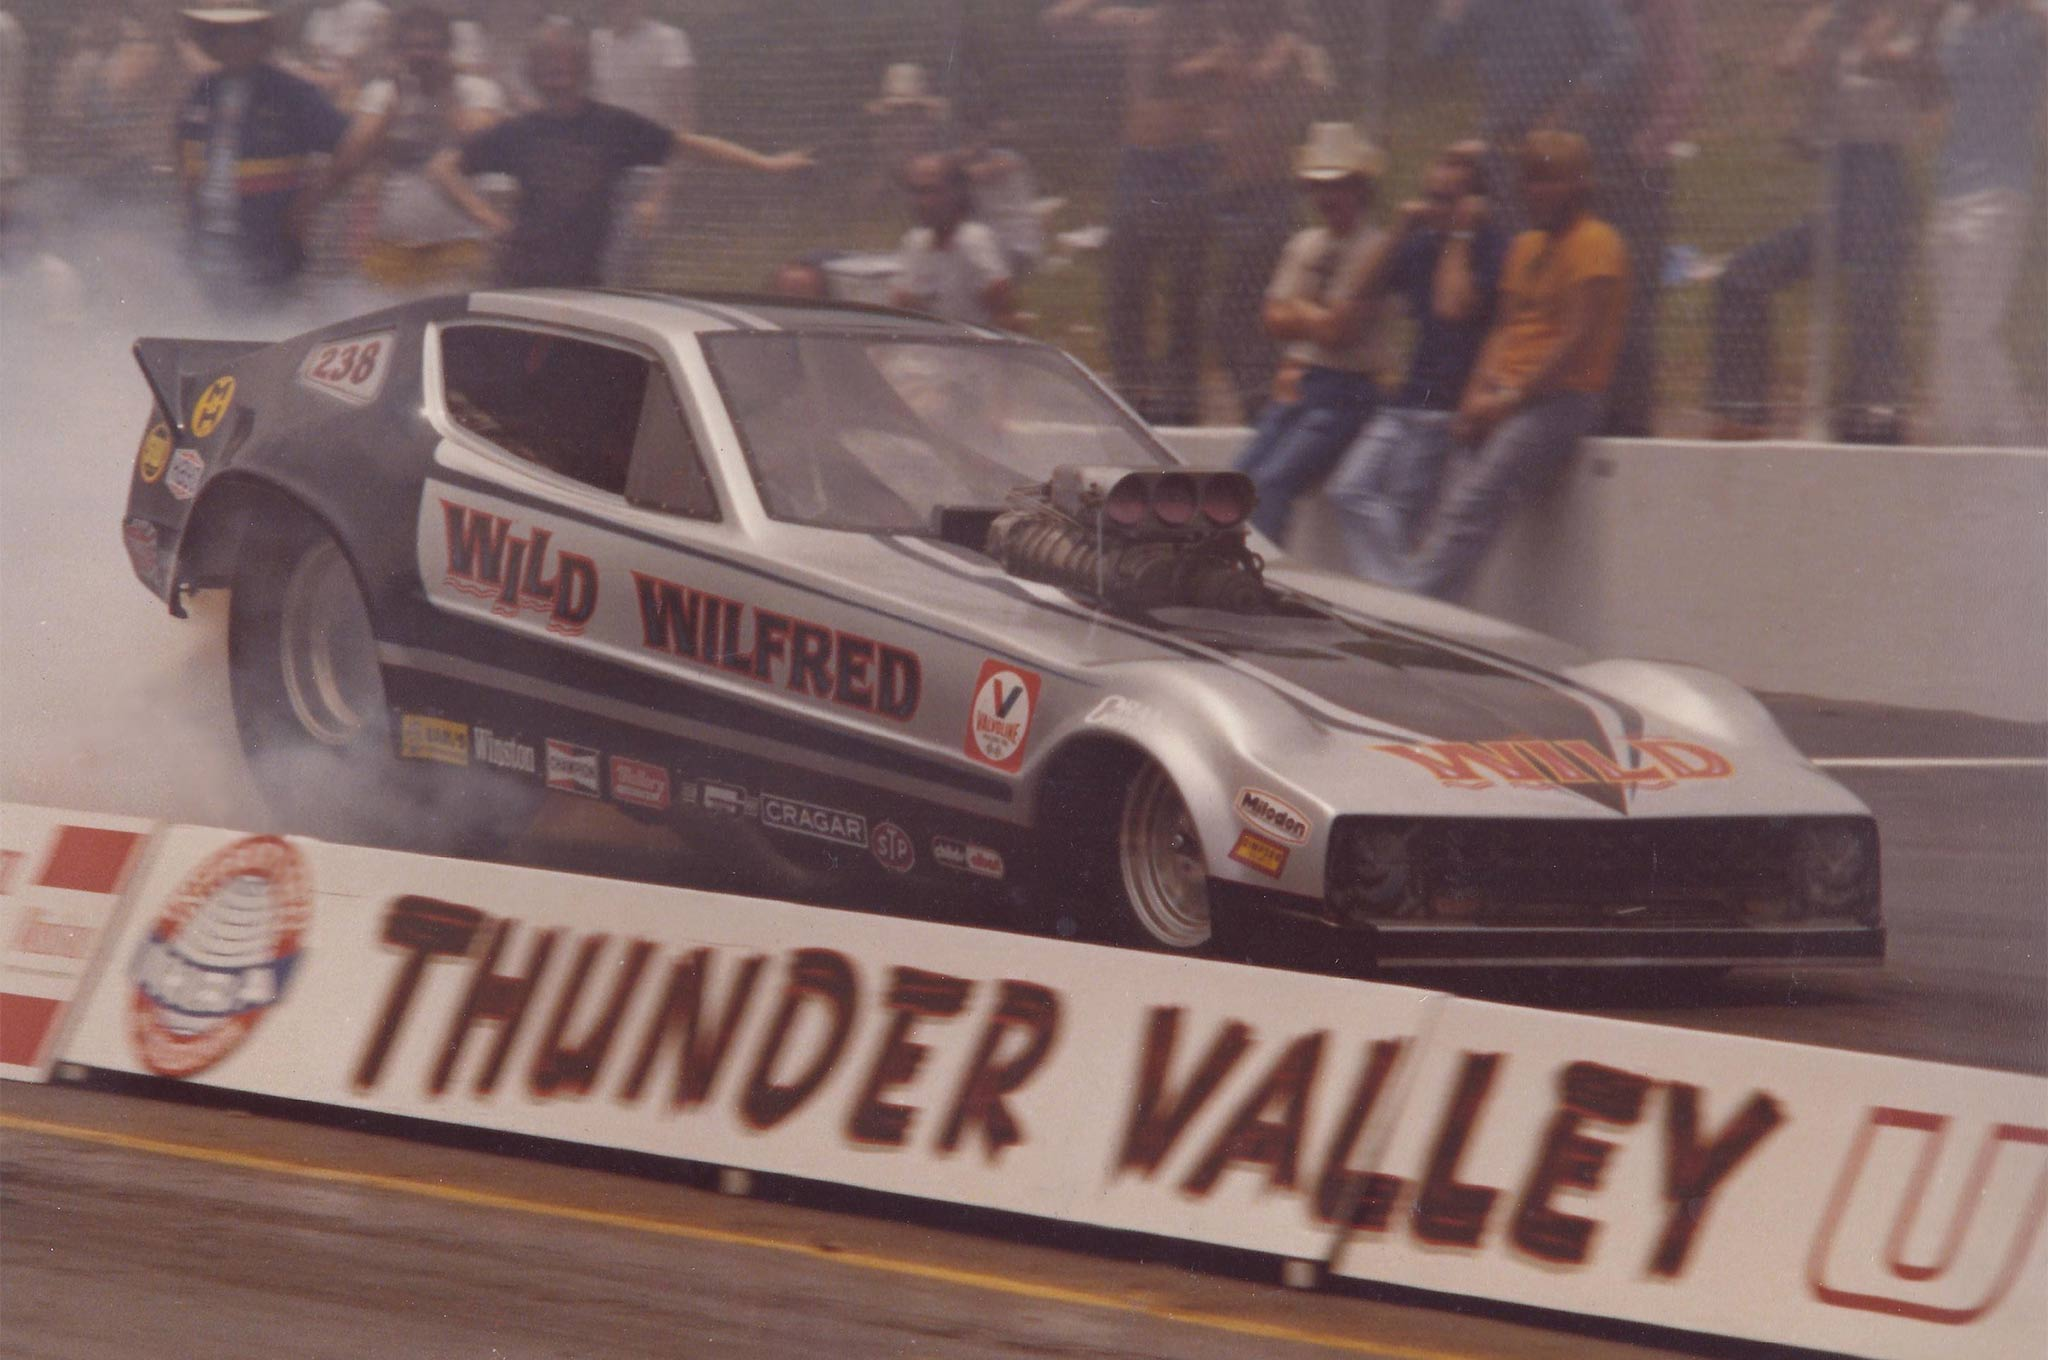 Boutilier's swan song: A Plymouth Arrow body shell on a Cox chassis powered by a Donovan block and heads served Wild Wilfred from 1979 until his racing career concluded in 1982.